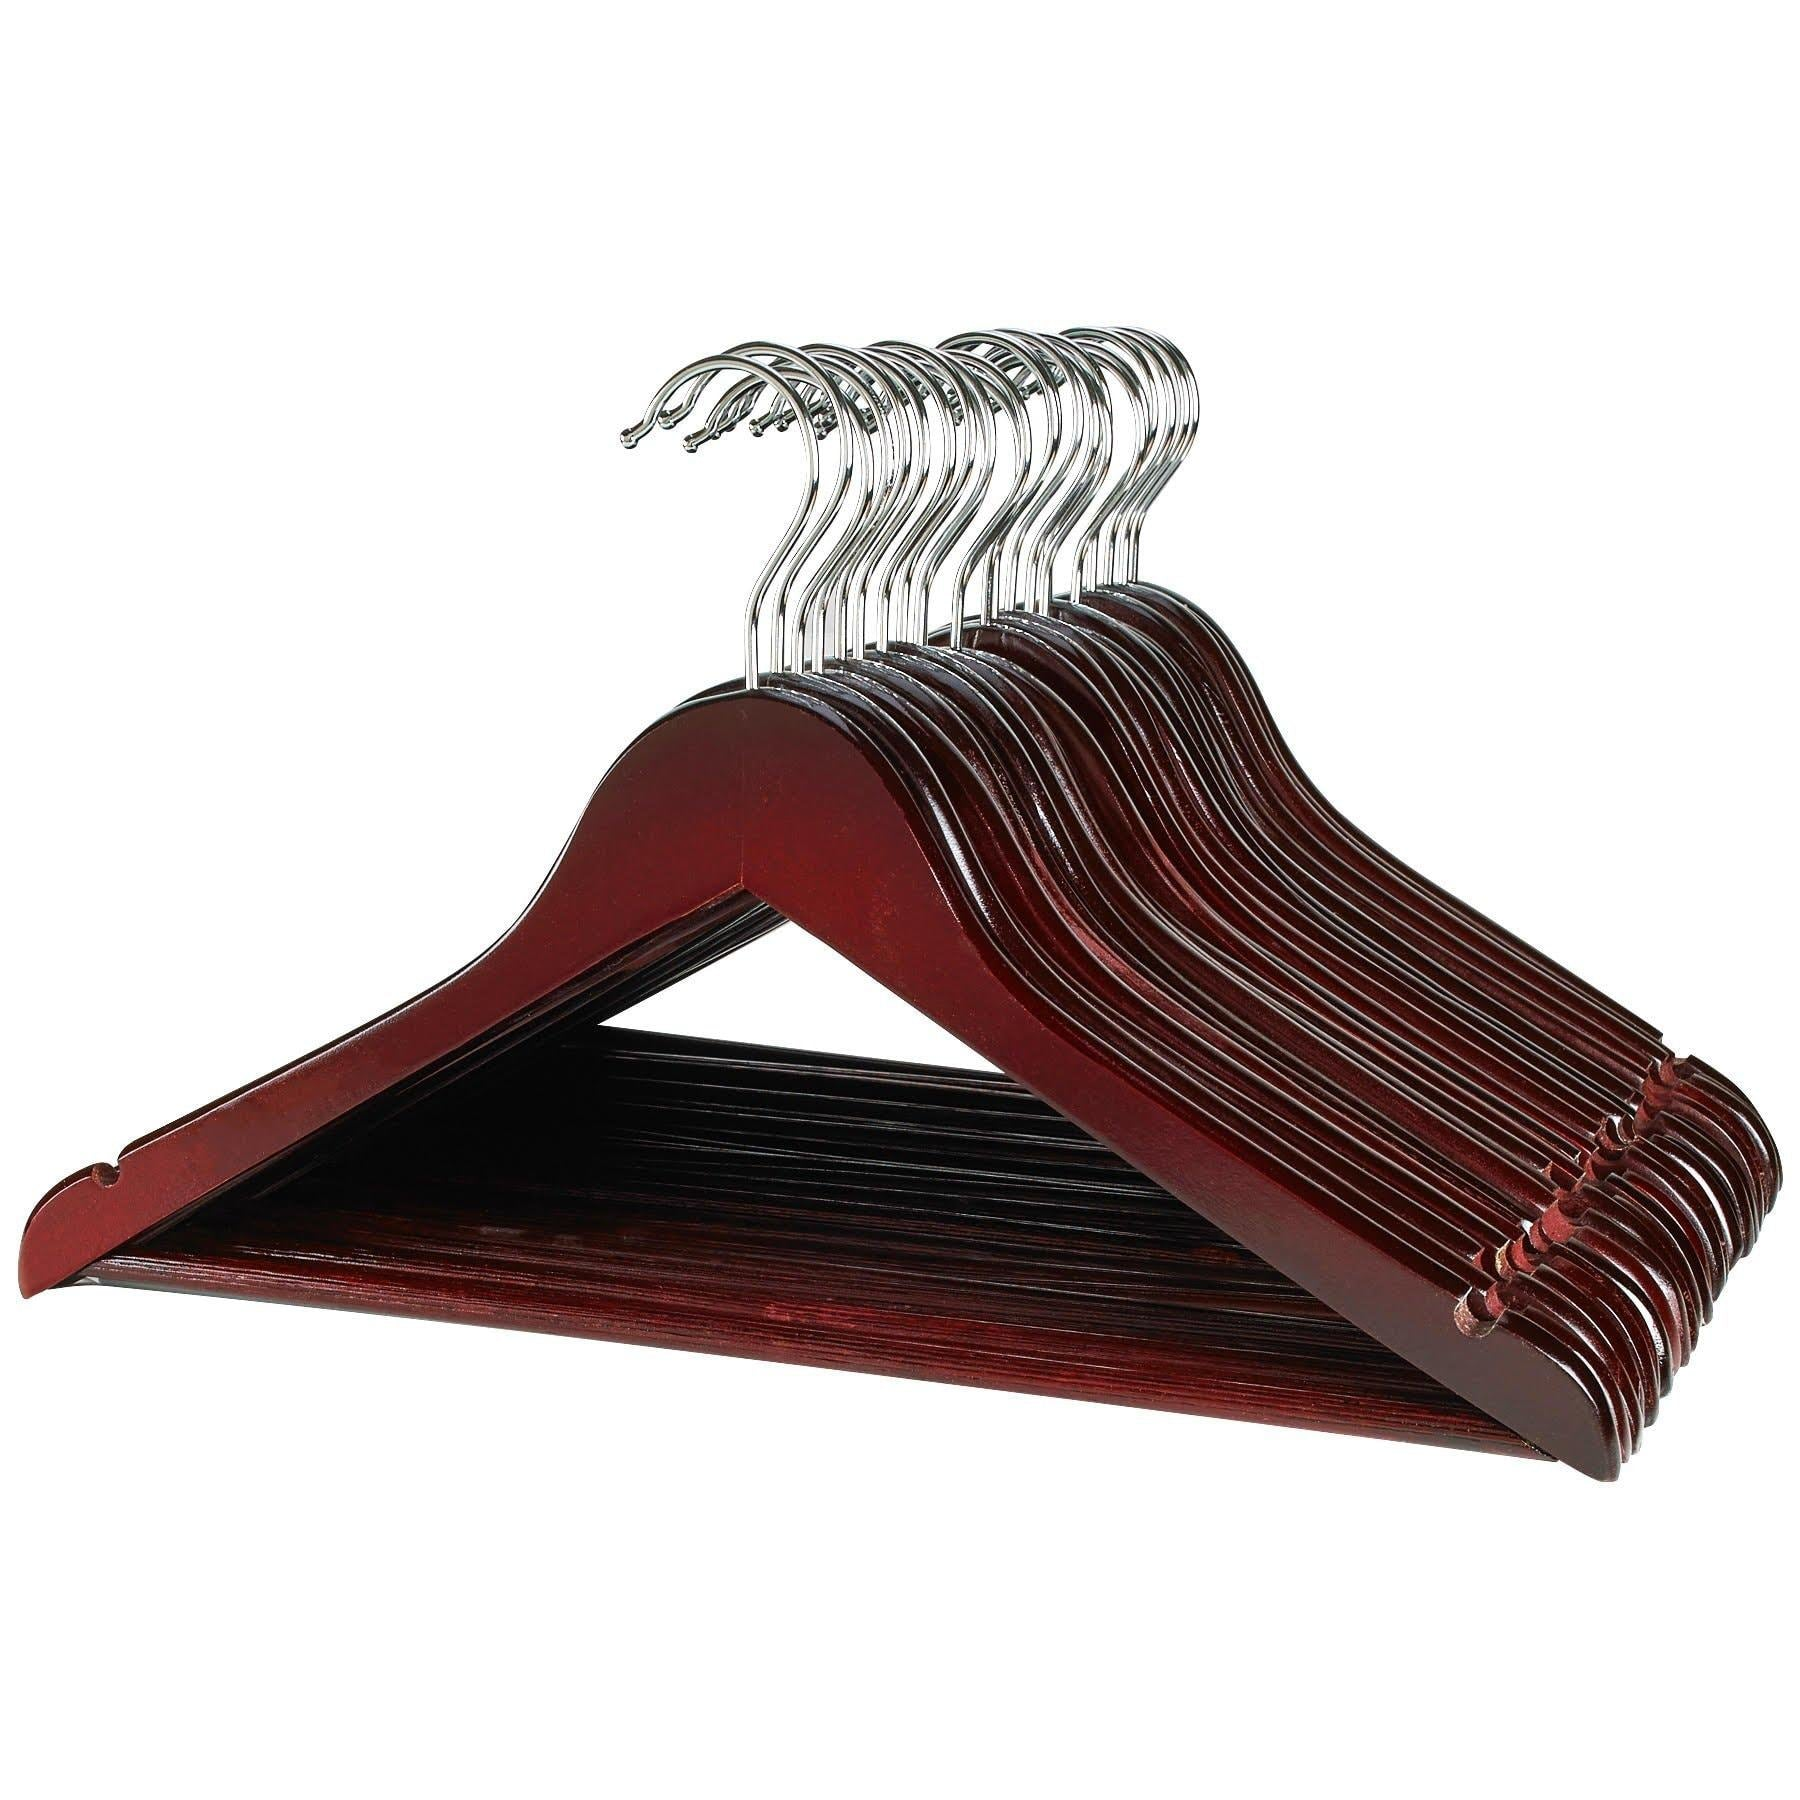 Cheap florida brands premium wooden mahogany suit hangers 96 pack of coat hangers and black dress suit ultra smooth hanger strong and durable suit hangers